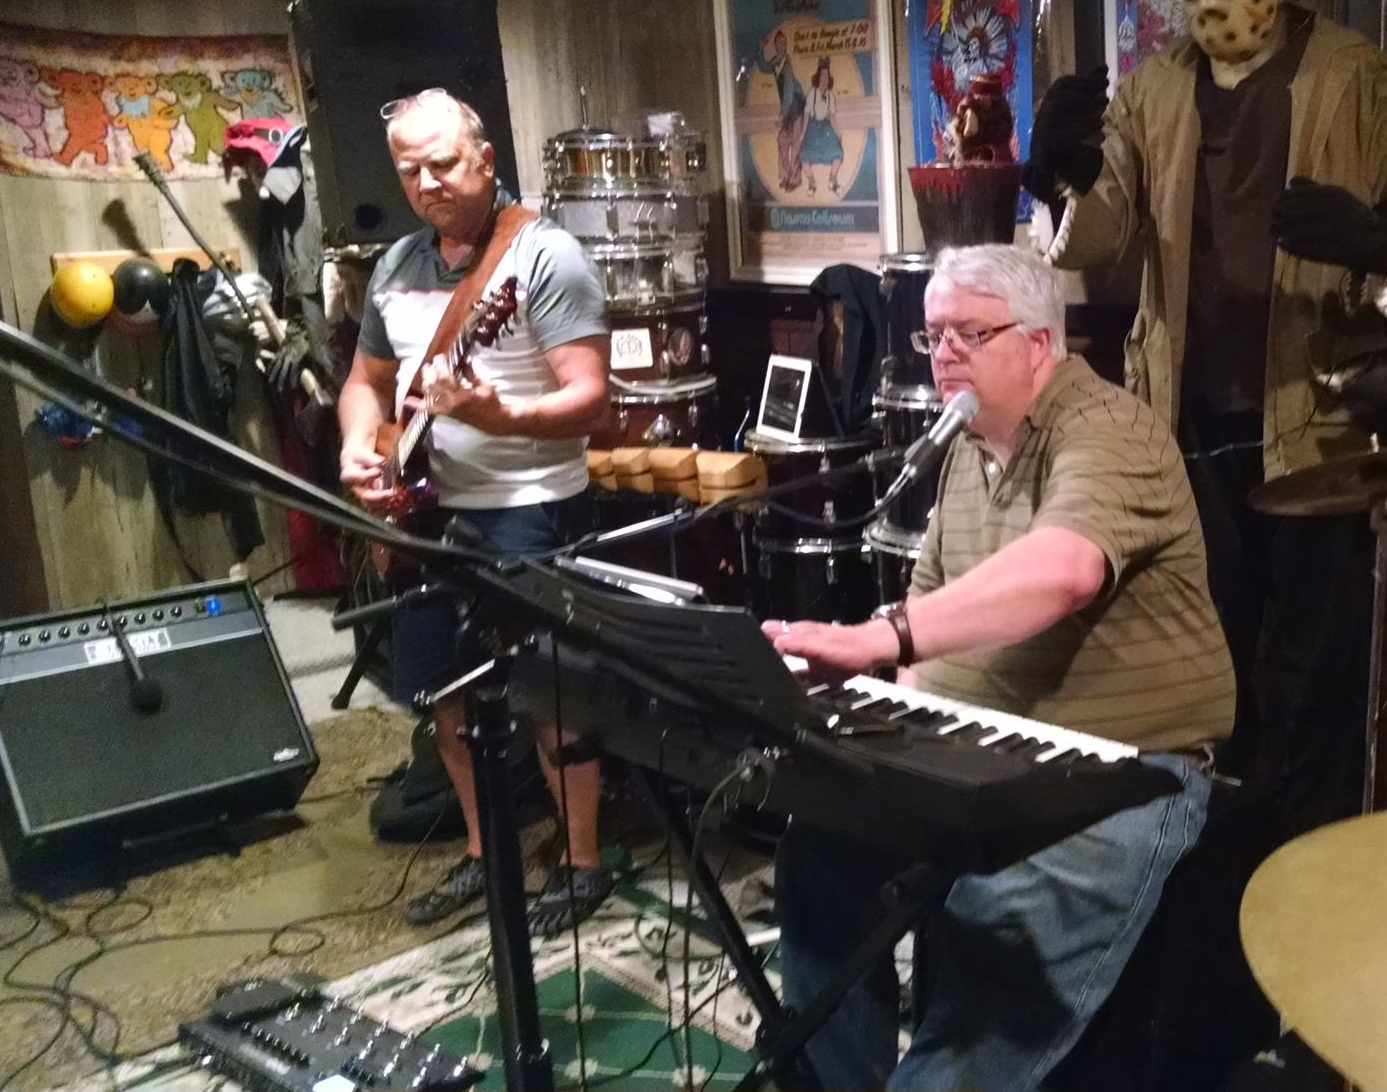 Guitarist Steve Pavlosky and the author at an Any The Wiser rehearsal